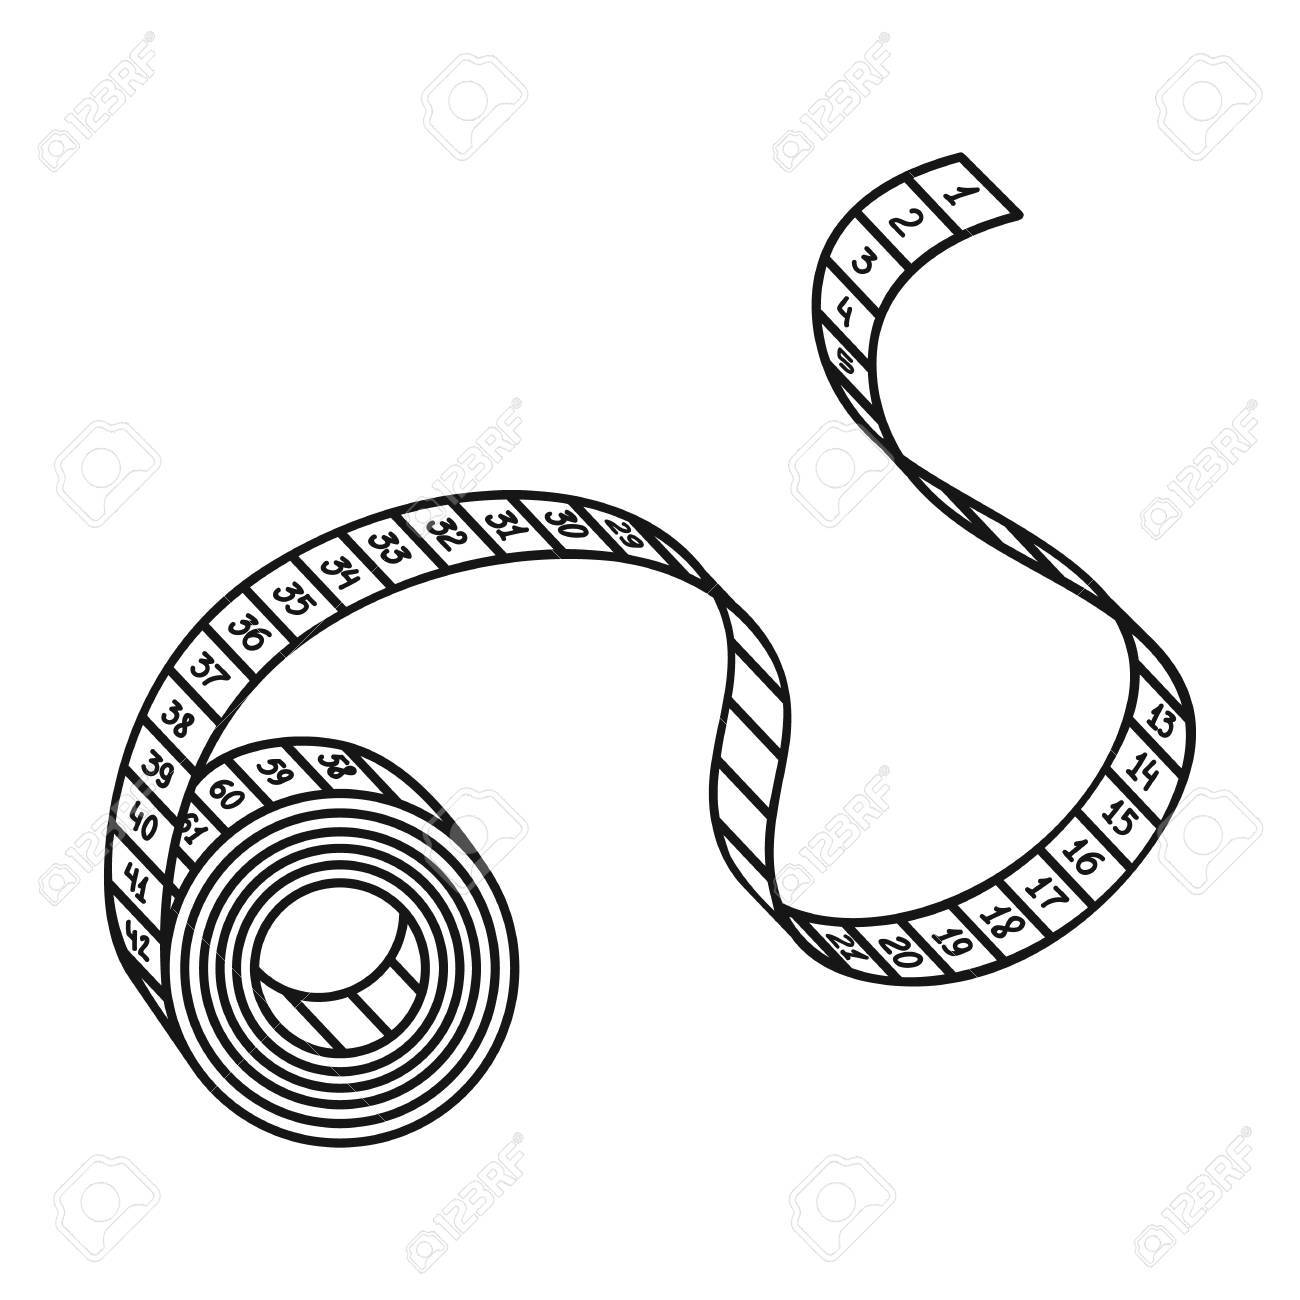 measuring tape png clipart - Clip Art Library